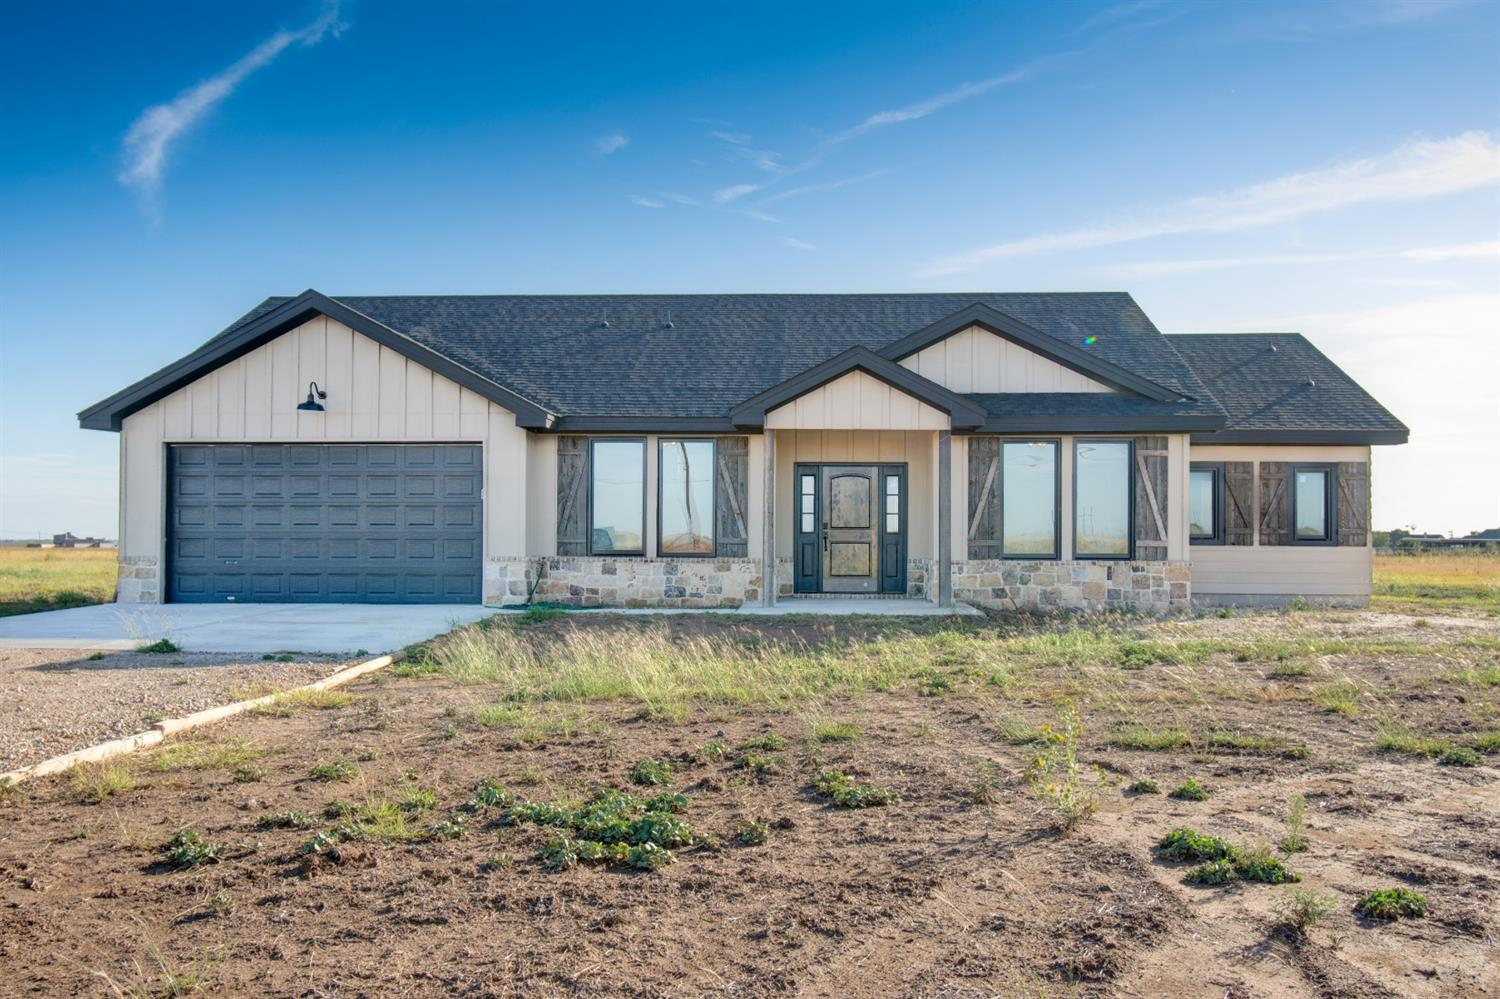 Brand new construction! Custom home on over 10 acres with room to roam and enjoy those perfect West Texas sunsets. From the time you open the door you are greeted with a neutral color palette and lots of natural light, soaring ceilings and the perfect stone fireplace. This open concept home makes for the perfect entertaining house. Hurry and see this house before it is to late. Be moved in before the holidays! Seller to offer up to $5,000 in closing cost assistance with an acceptable offer.